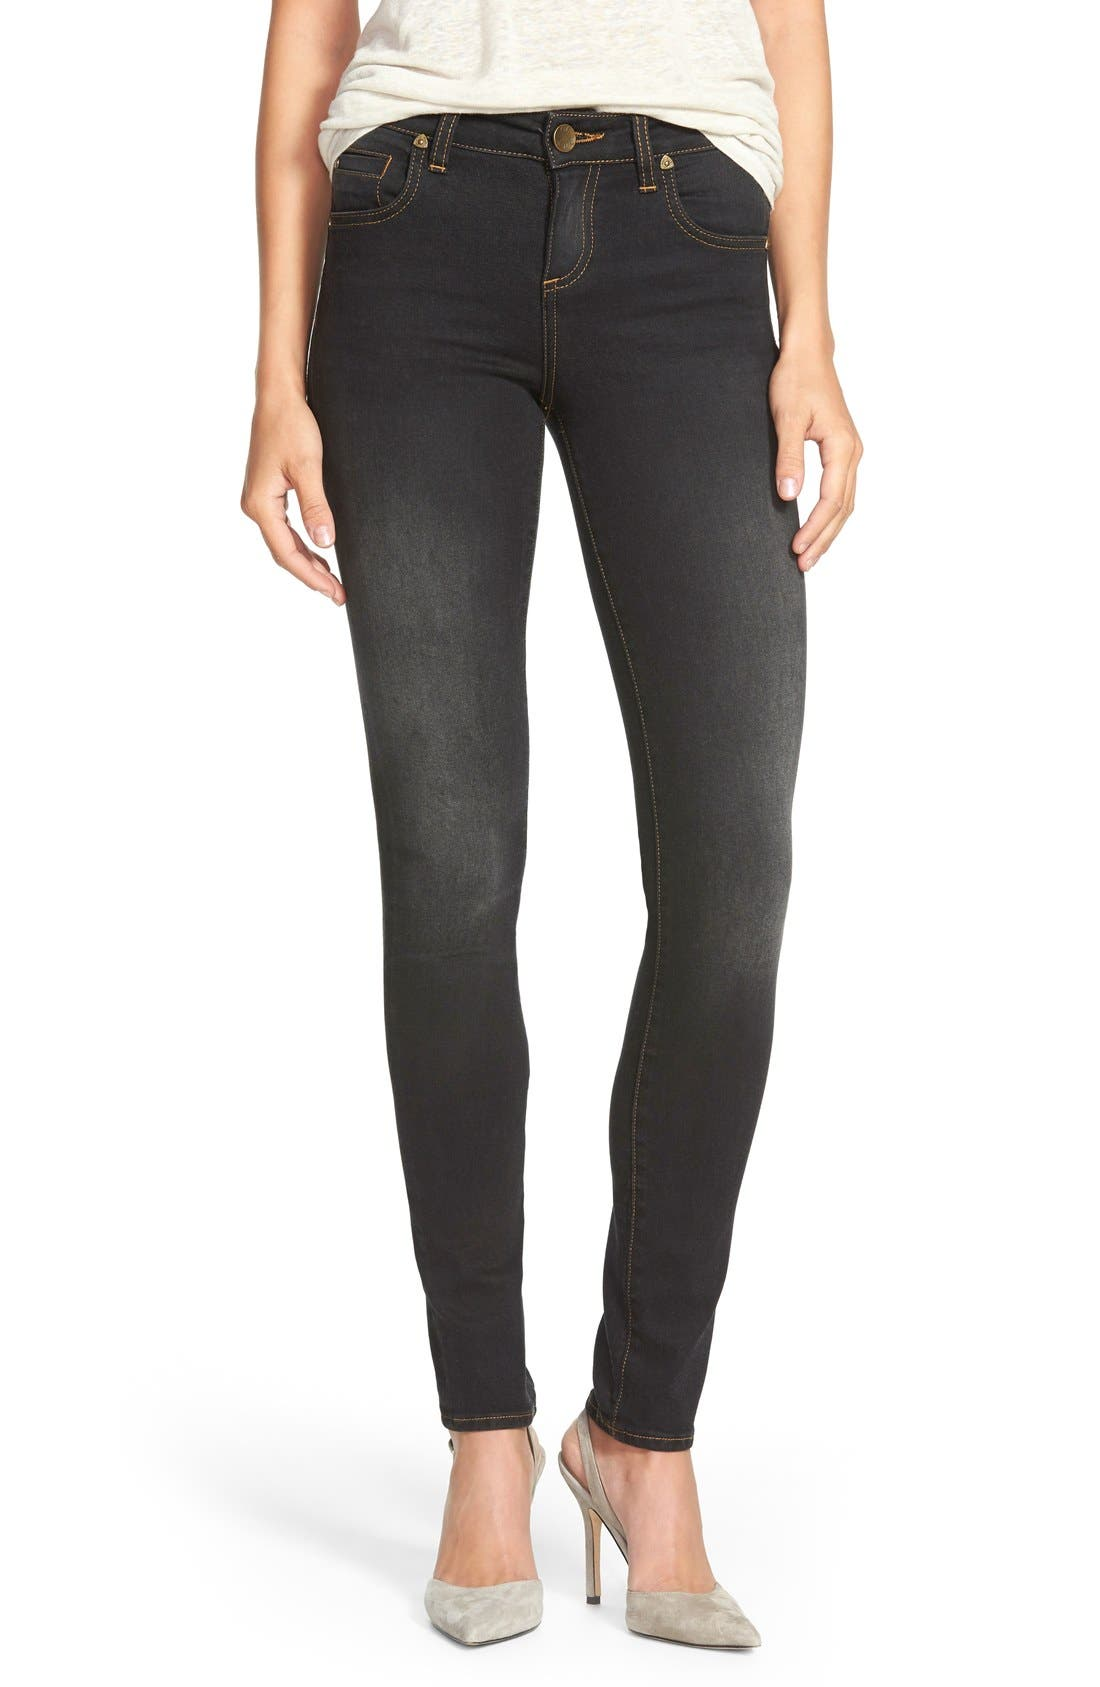 Main Image - KUT from the Kloth 'Diana' Stretch Skinny Jeans (Black) (Regular & Petite)